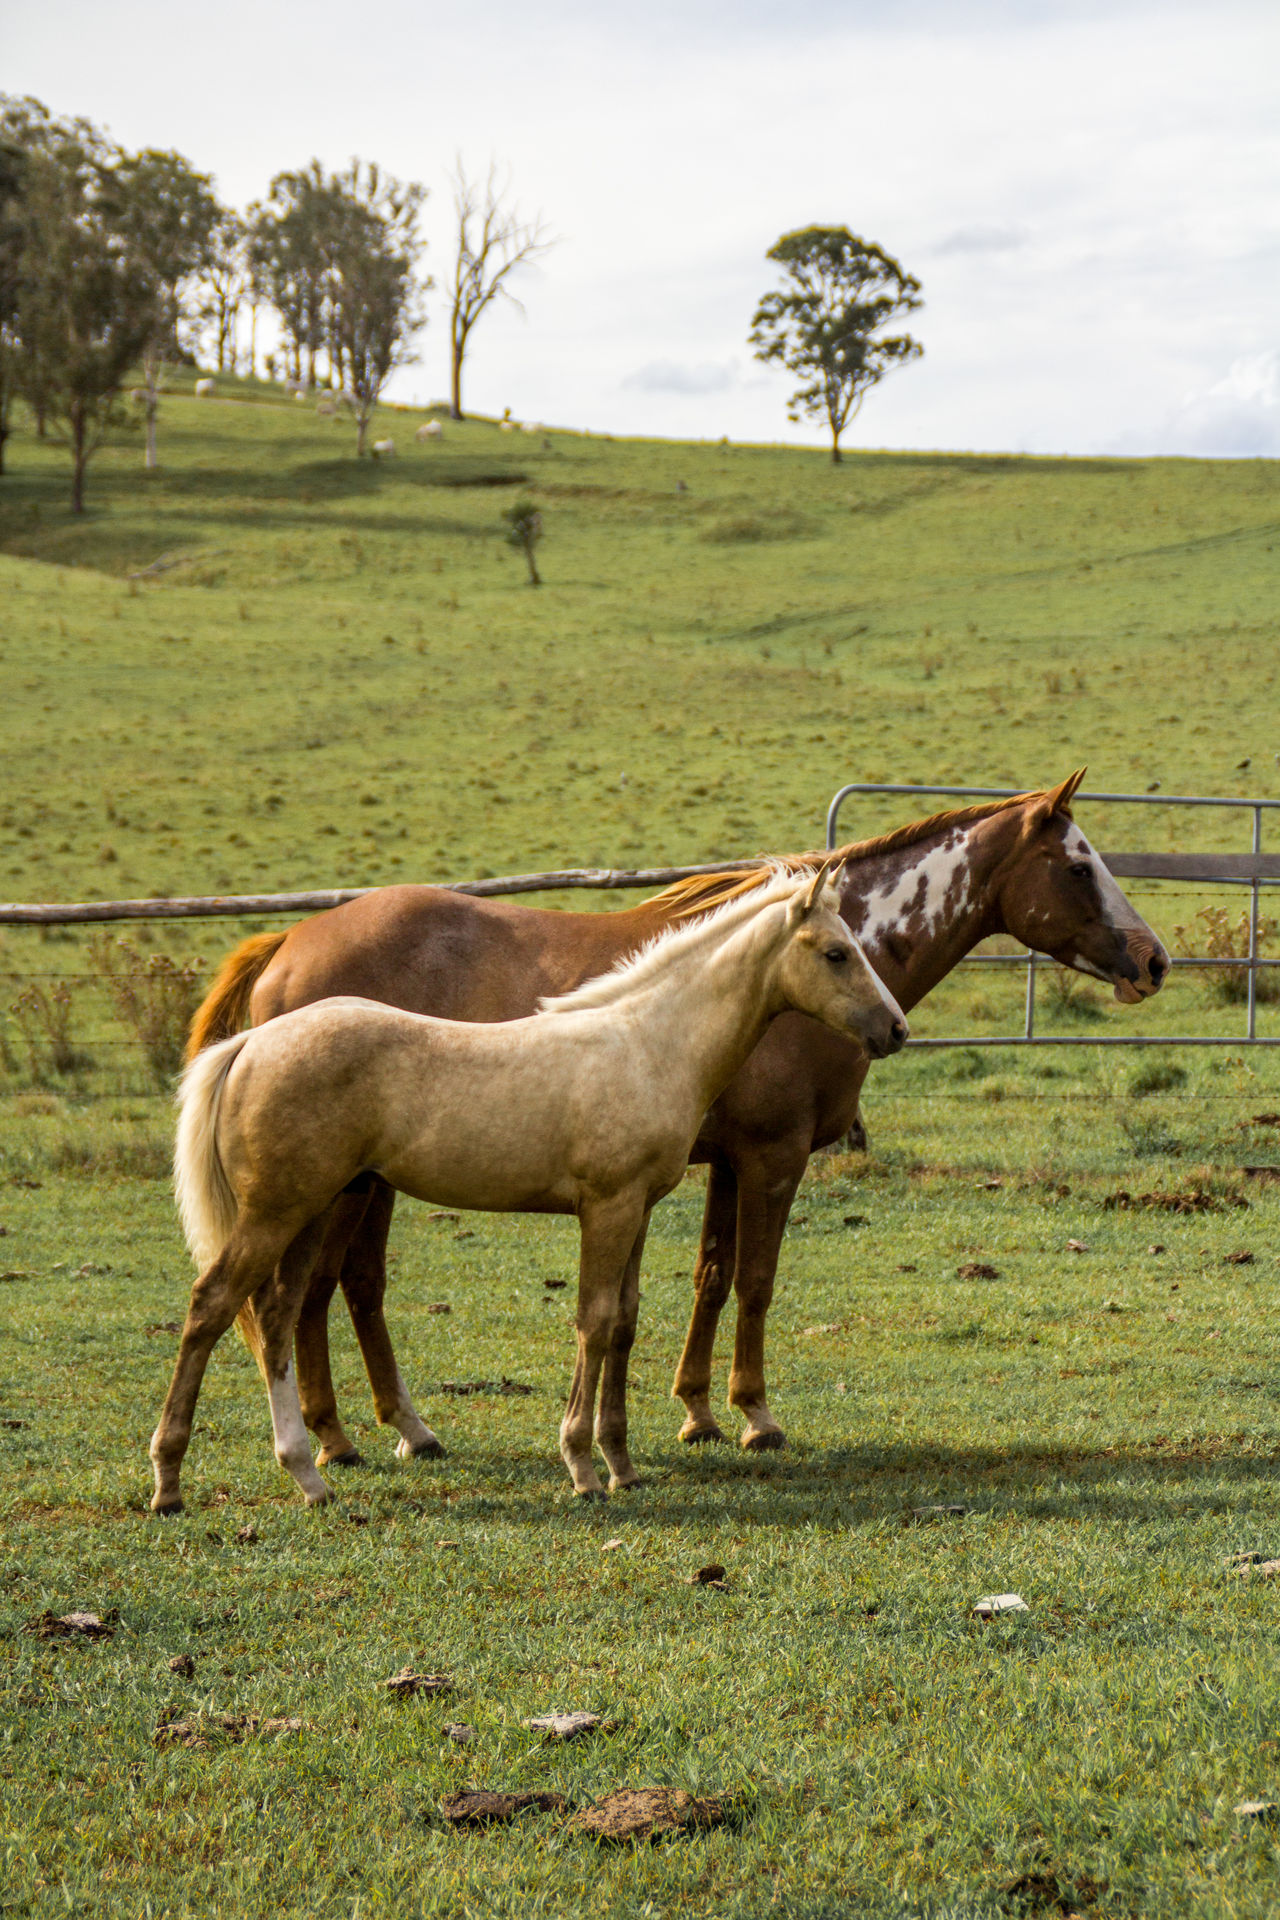 Baby horse and mother horse Animal Themes Baby Baby Horse Beautiful Brown Cute Domestic Animals Foal Grass Green Mammal Mare Mother Mother Horse Outdoors Pony Summer Young